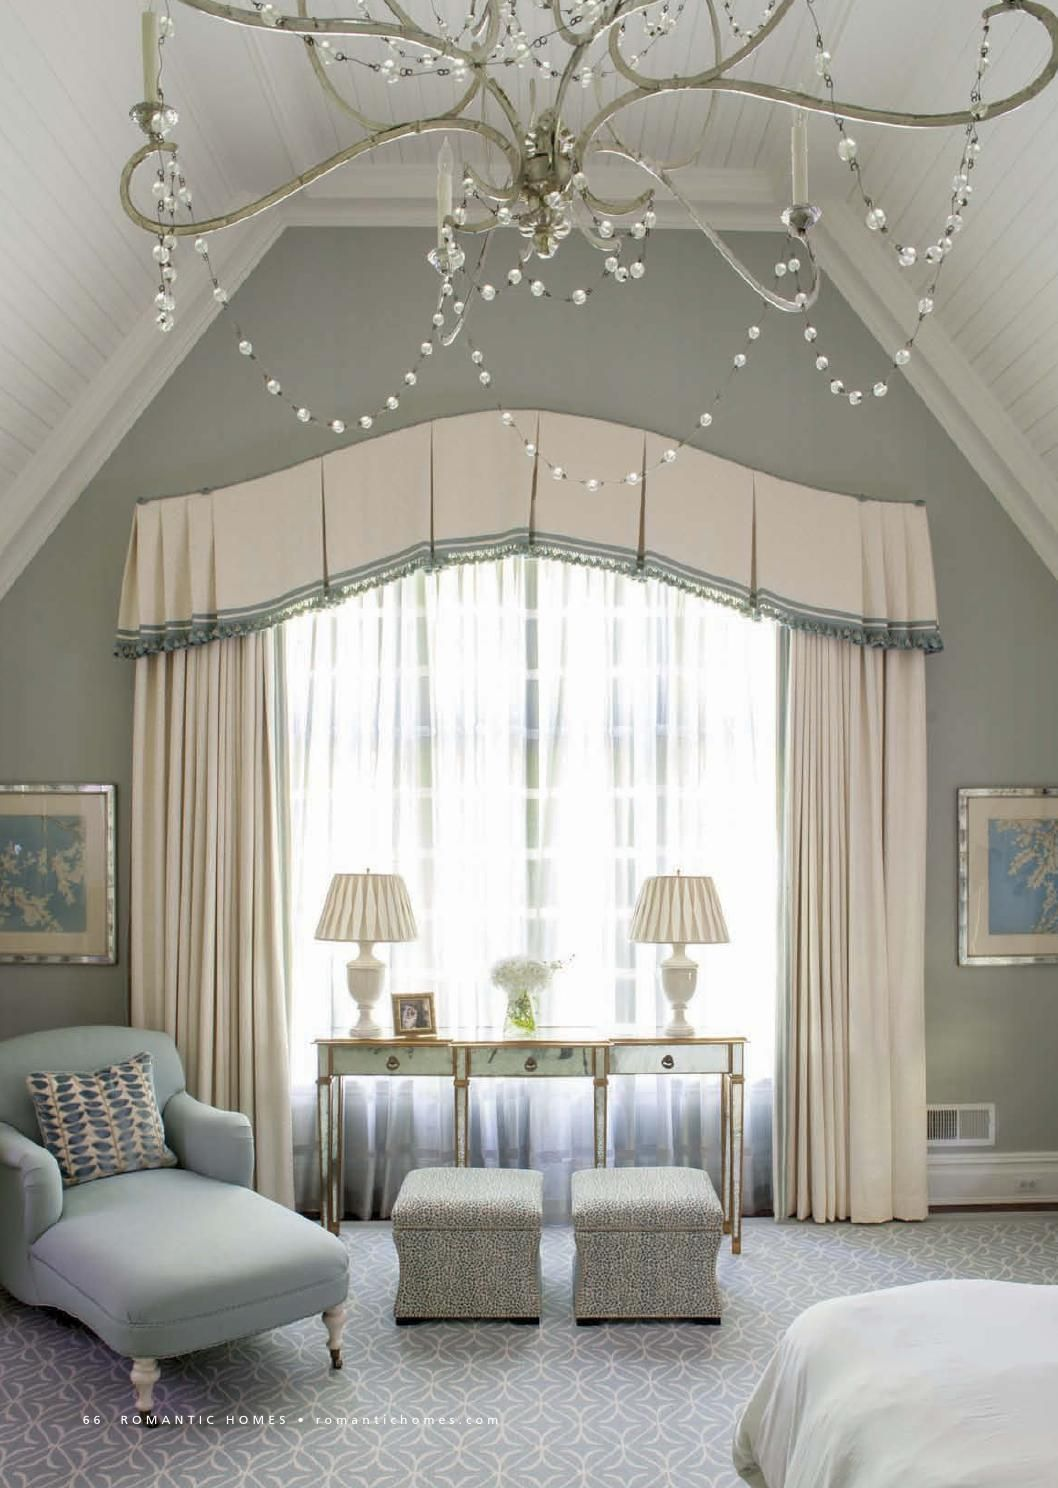 Bedroom From Romantic Homes 201405 Like Window Treatment